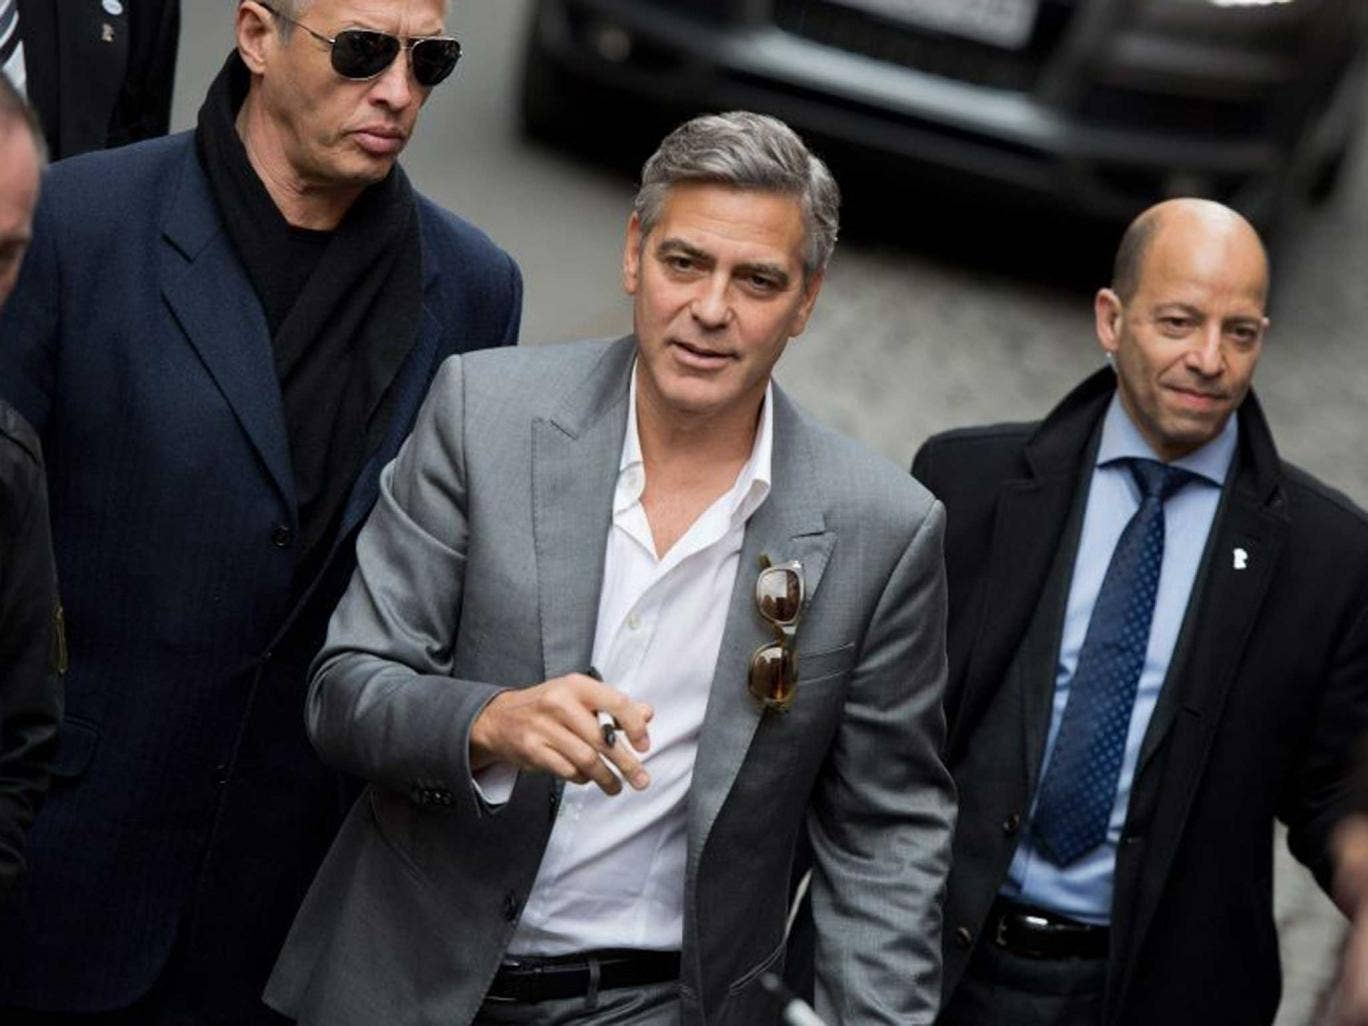 Monument man: The reliefs, once known as the Elgin Marbles, should be returned, says George Clooney